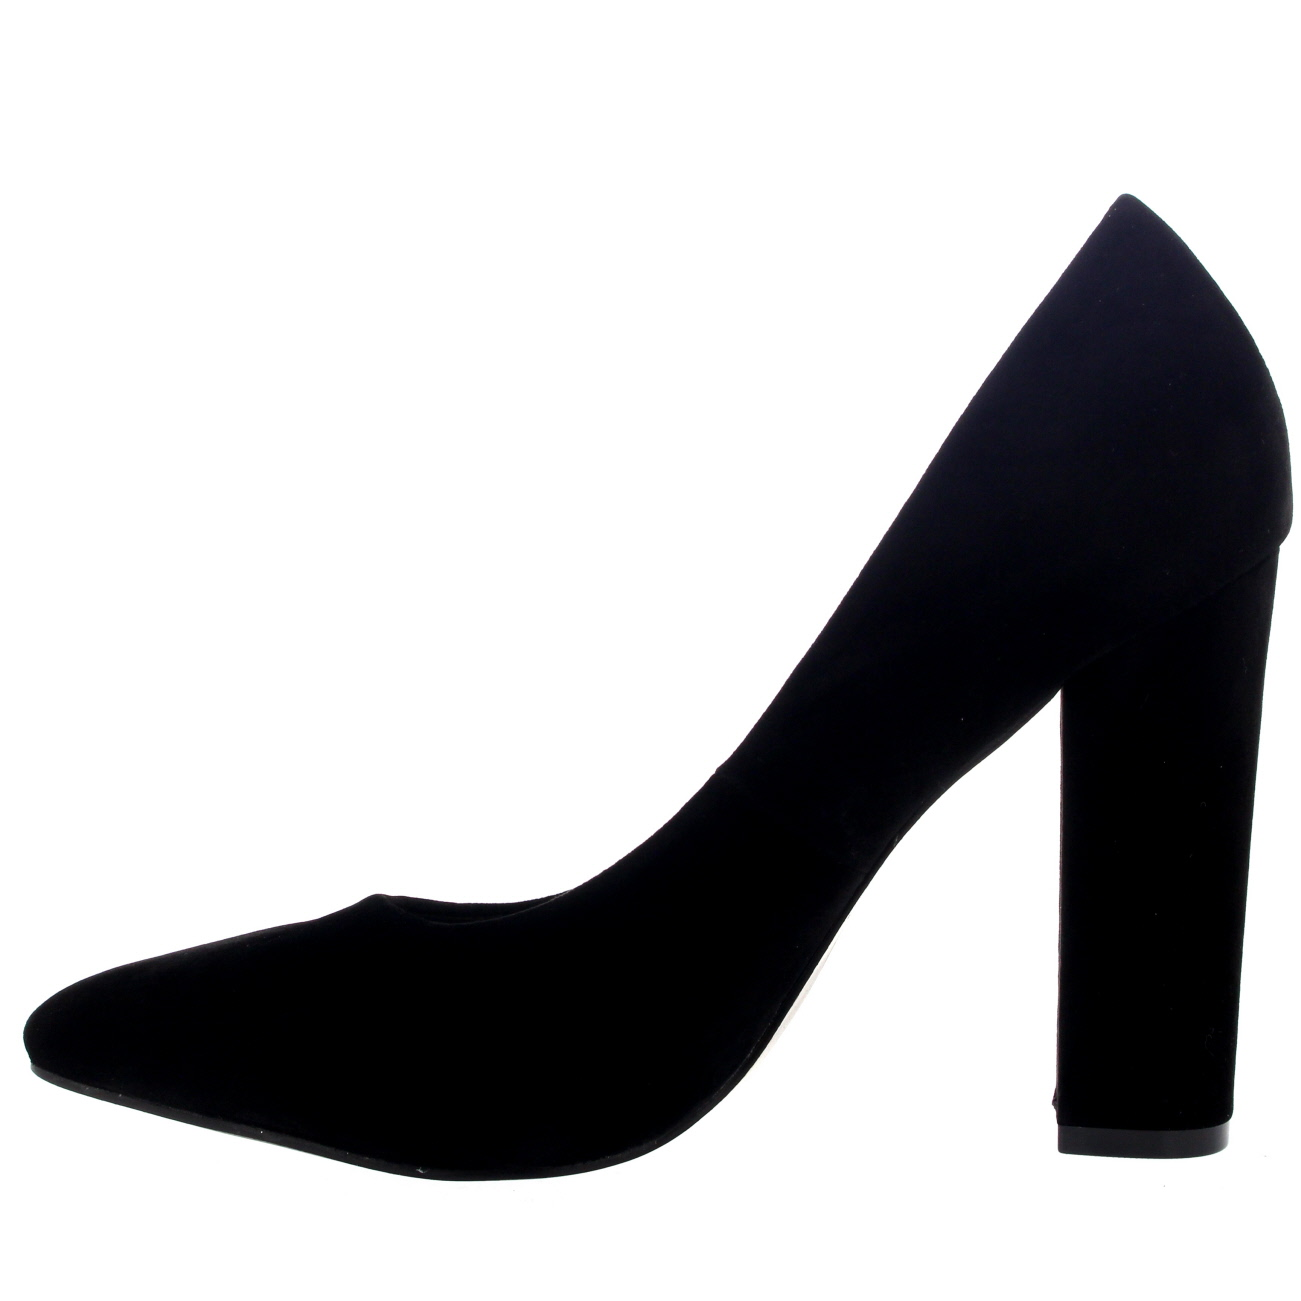 Ladies Fashion Formal Heeled Pointed Toe Court Shoes Work Pumps ... 1b94de07dbcd